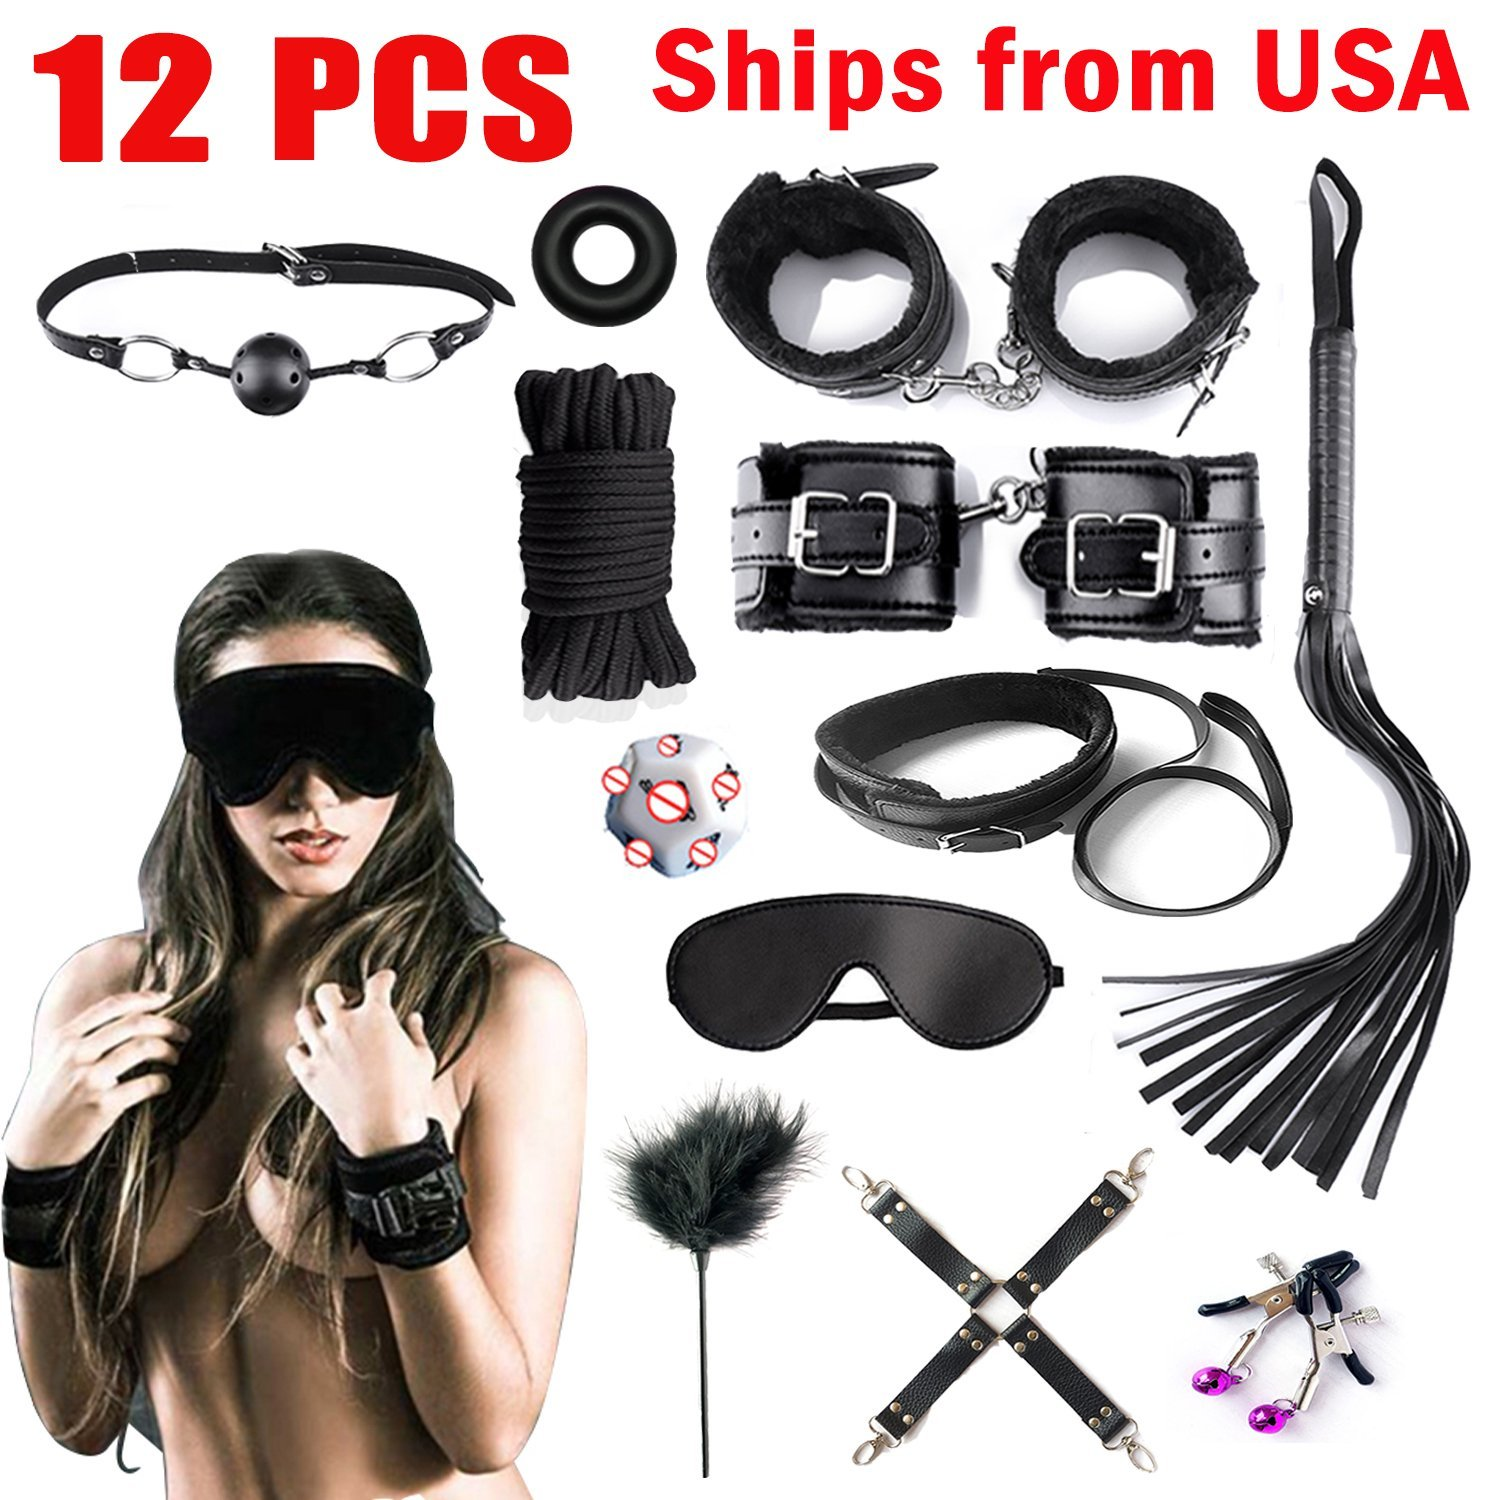 Handcuffs for Under bed restraint Kit Bondage Bondageromance Fetish Sex Play BDSM SM Restraining Straps Thigh Game Tie up Mattress Harness Things Blindfold Whips Toys Adults Women sdfgsr by ALUTT